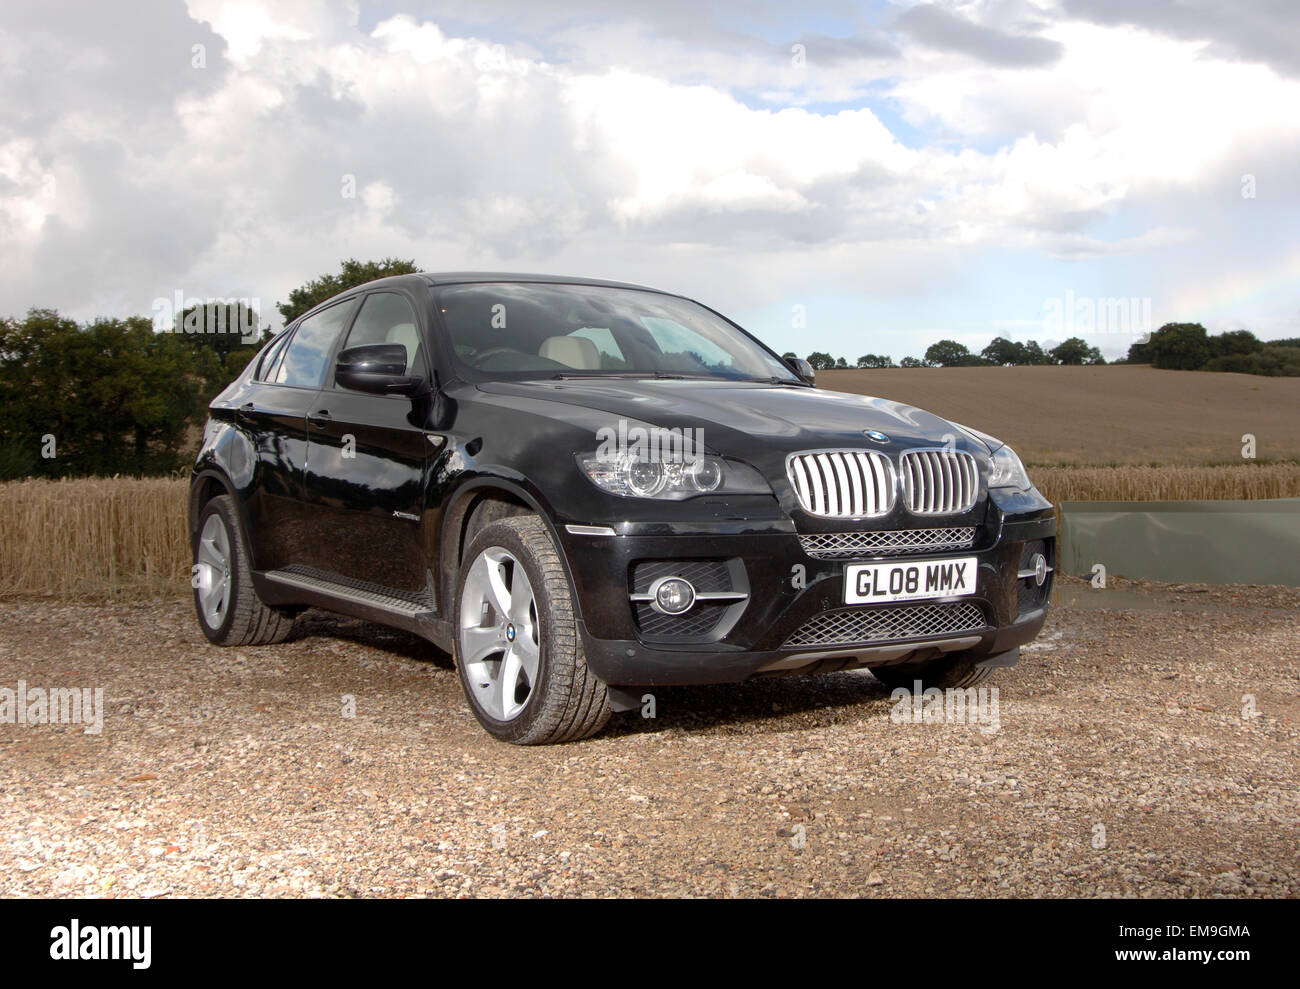 2008 BMW X6 SUV crossover location Photo Stock